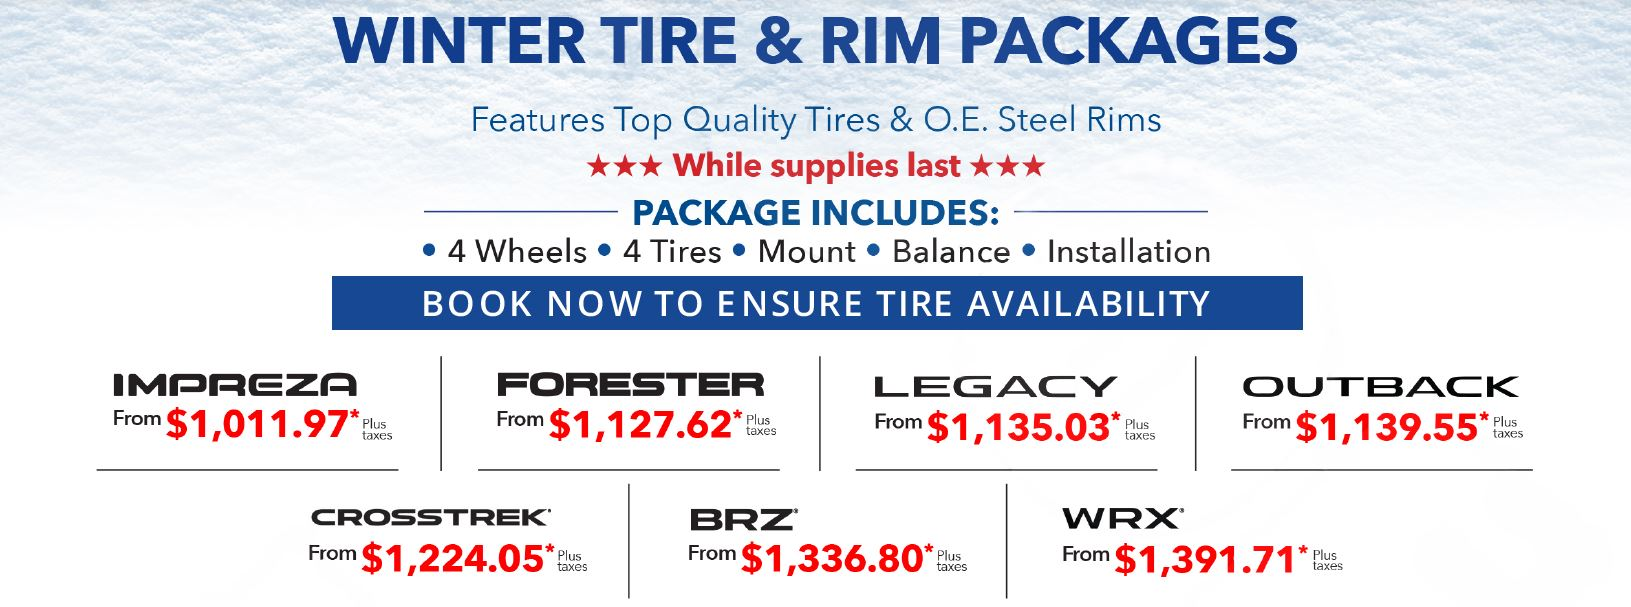 Tire & Rim Package